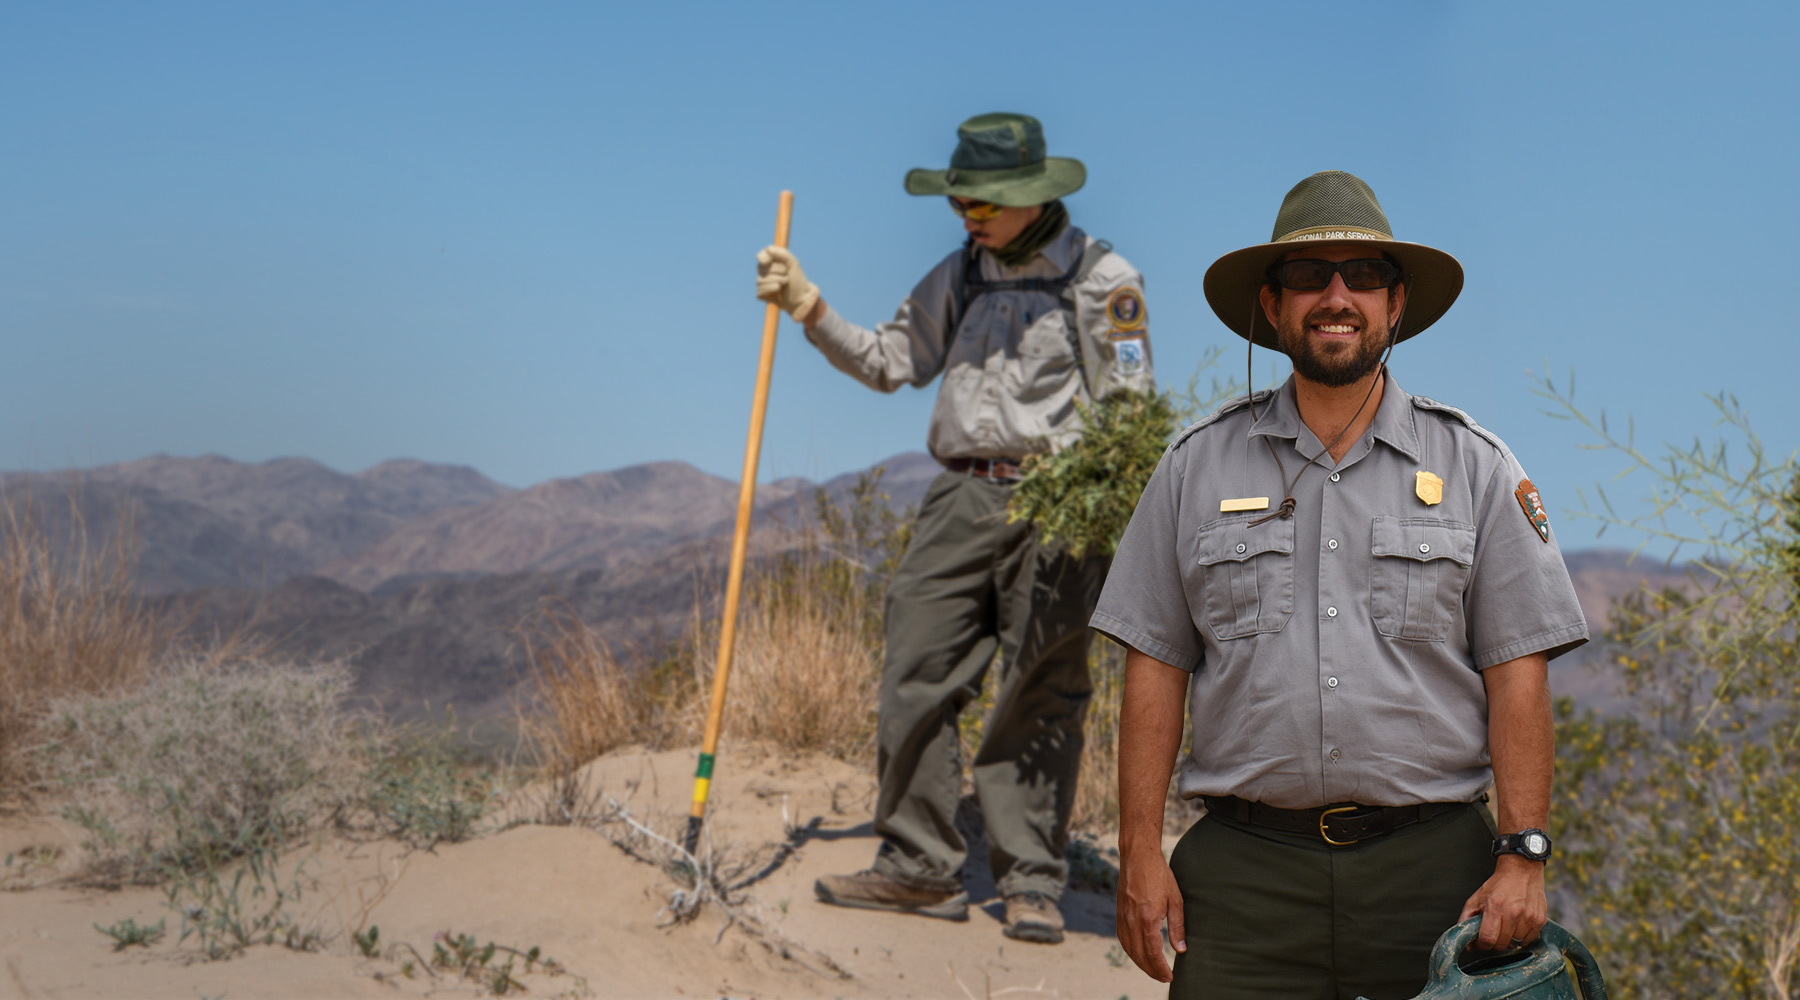 Rangers at Work on a National Park